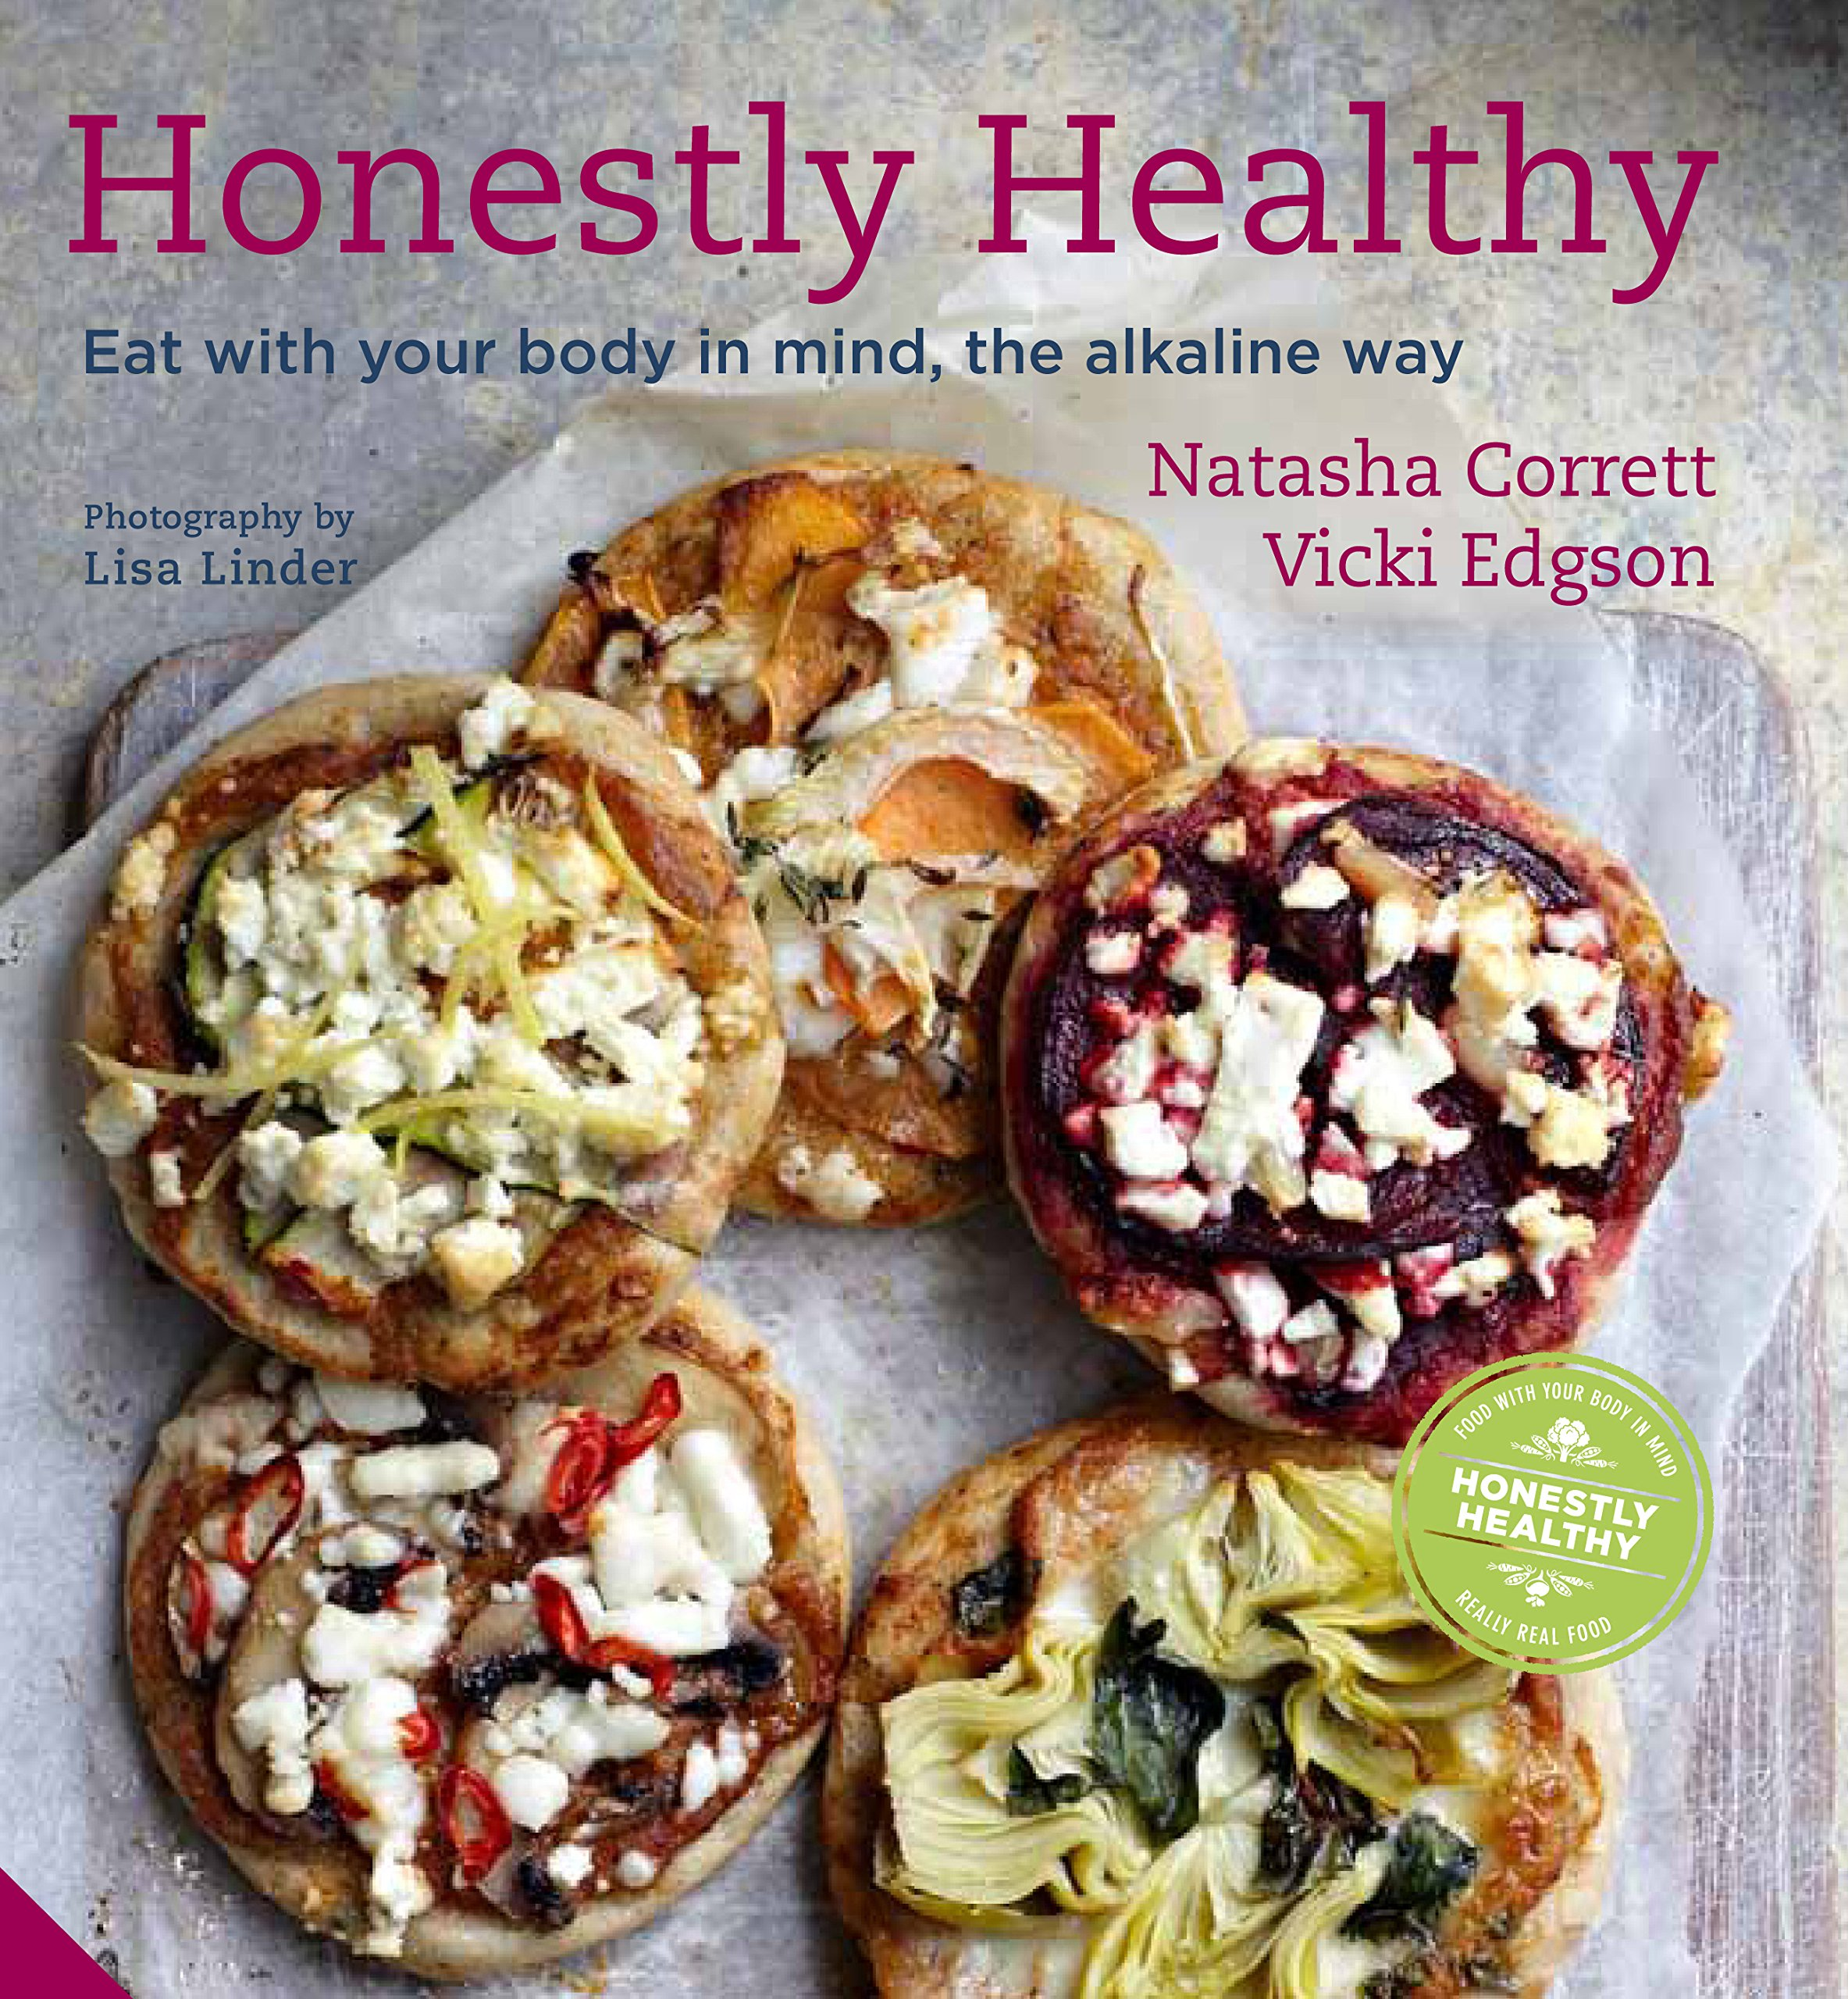 Honestly healthy eat with your body in mind the alkaline way honestly healthy eat with your body in mind the alkaline way amazon natasha corrett vicki edgson 9781906417819 books forumfinder Gallery